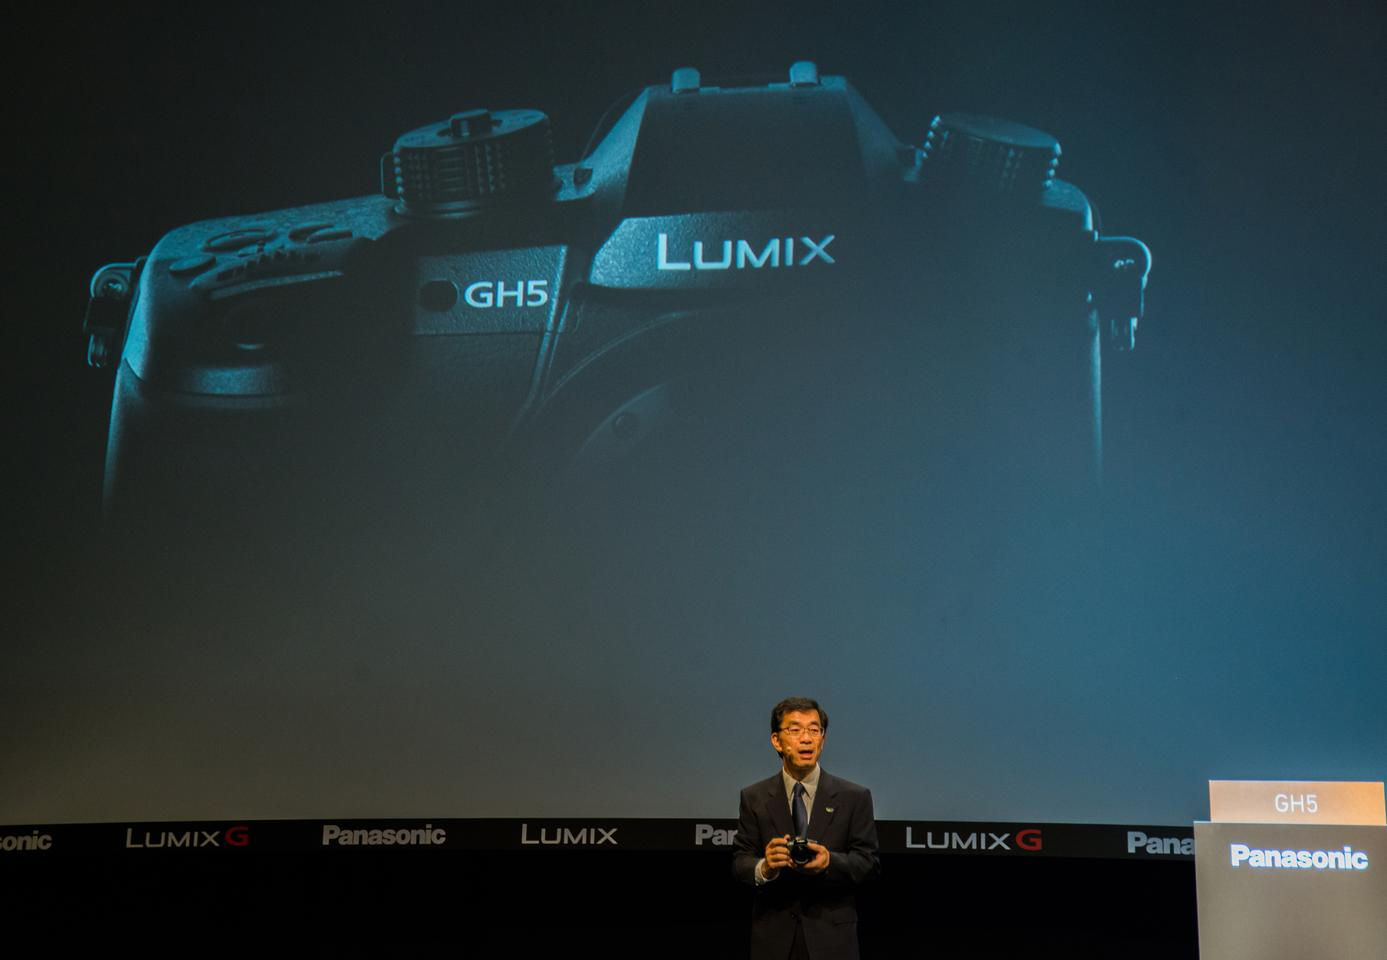 The eve of Photokina kicked off with Panasonic announcingthat the GH5 is in development, and due to launch in 2017